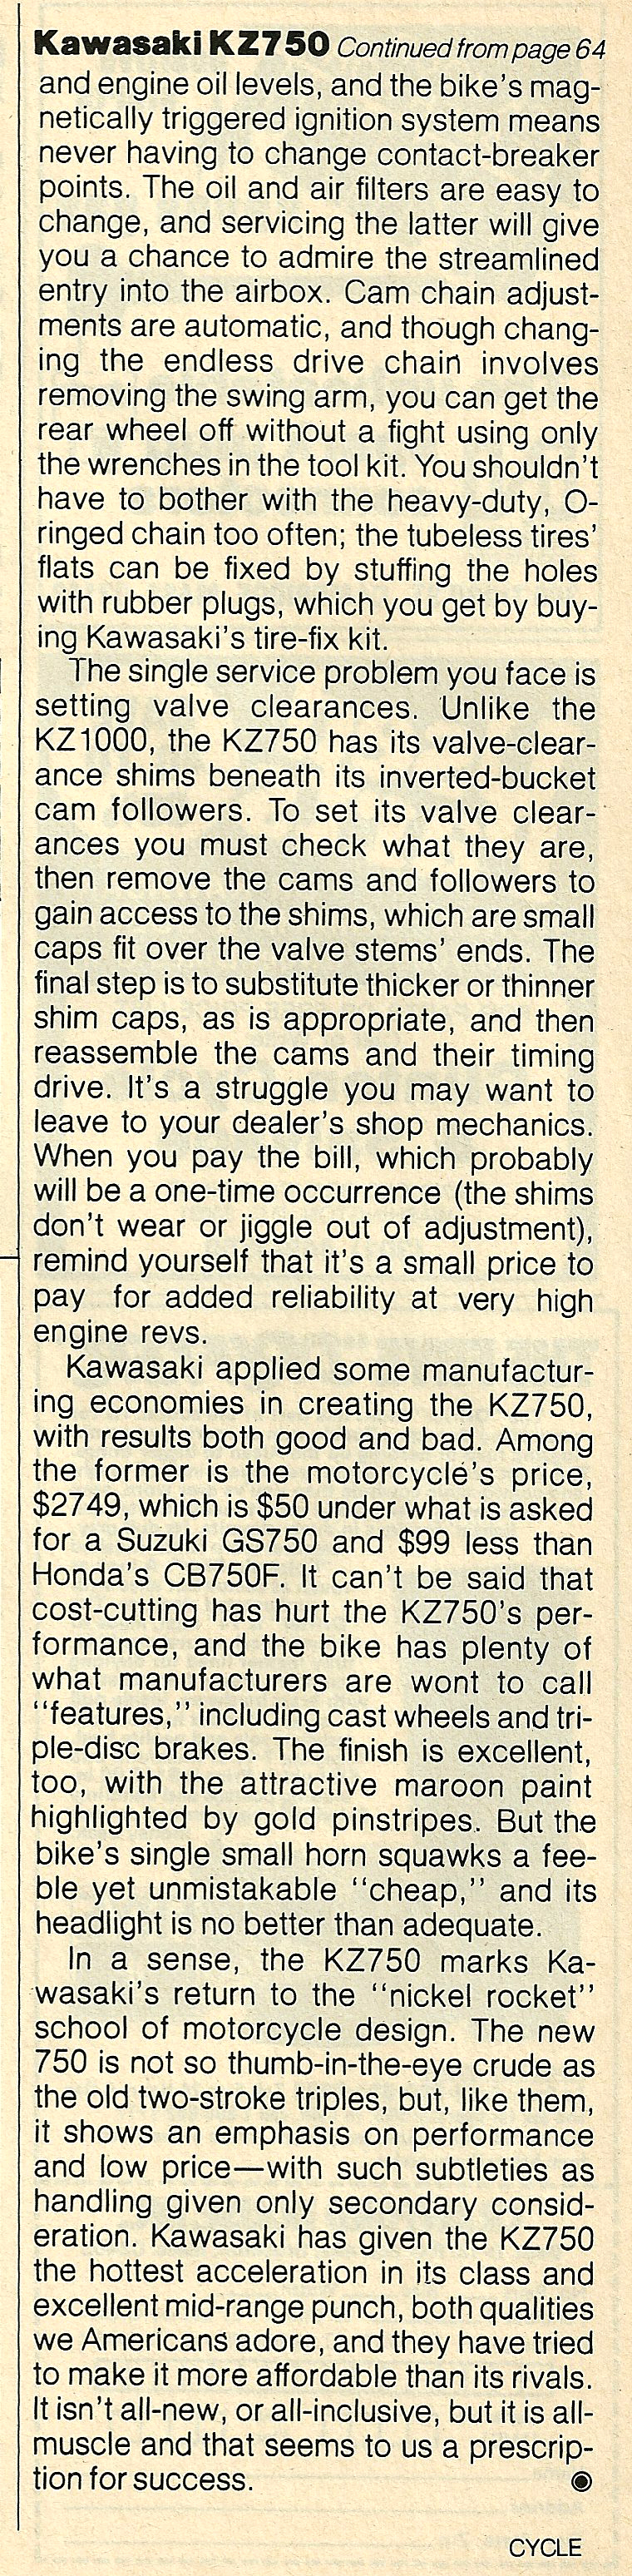 1980 Kawasaki KZ750 road test 10.jpg